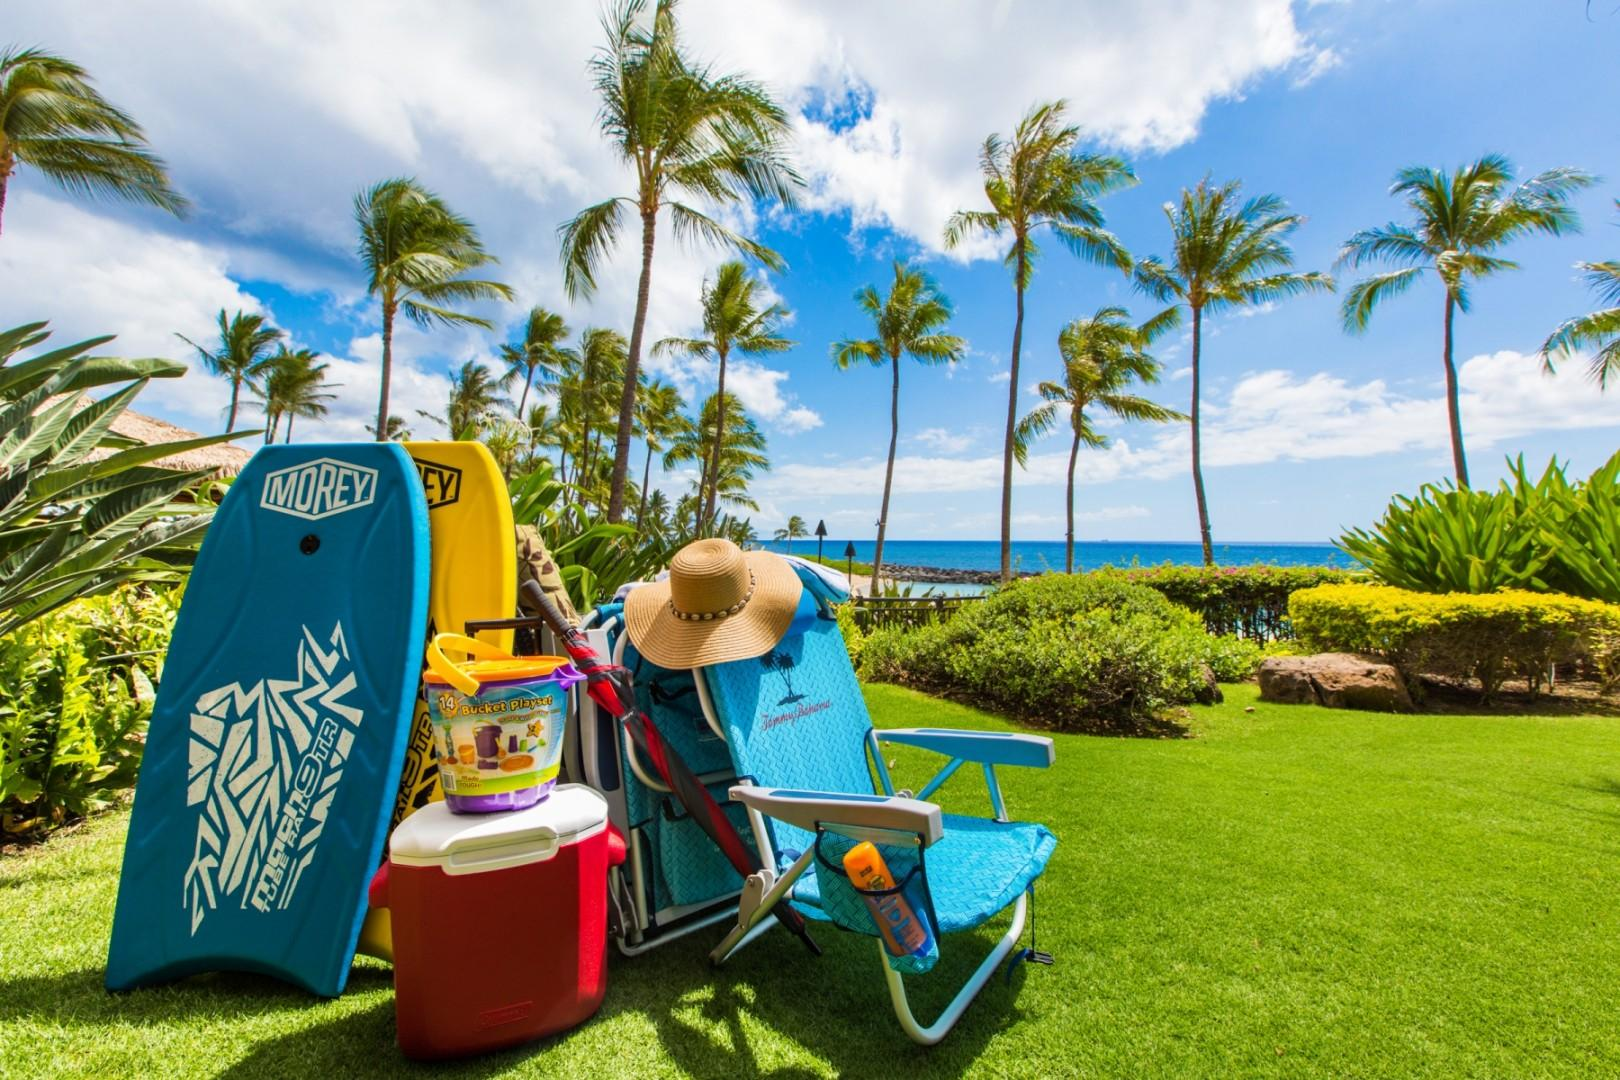 Fully stocked with beach amenities including boogie boards, cooler, beach chairs, beach towels and sand toys